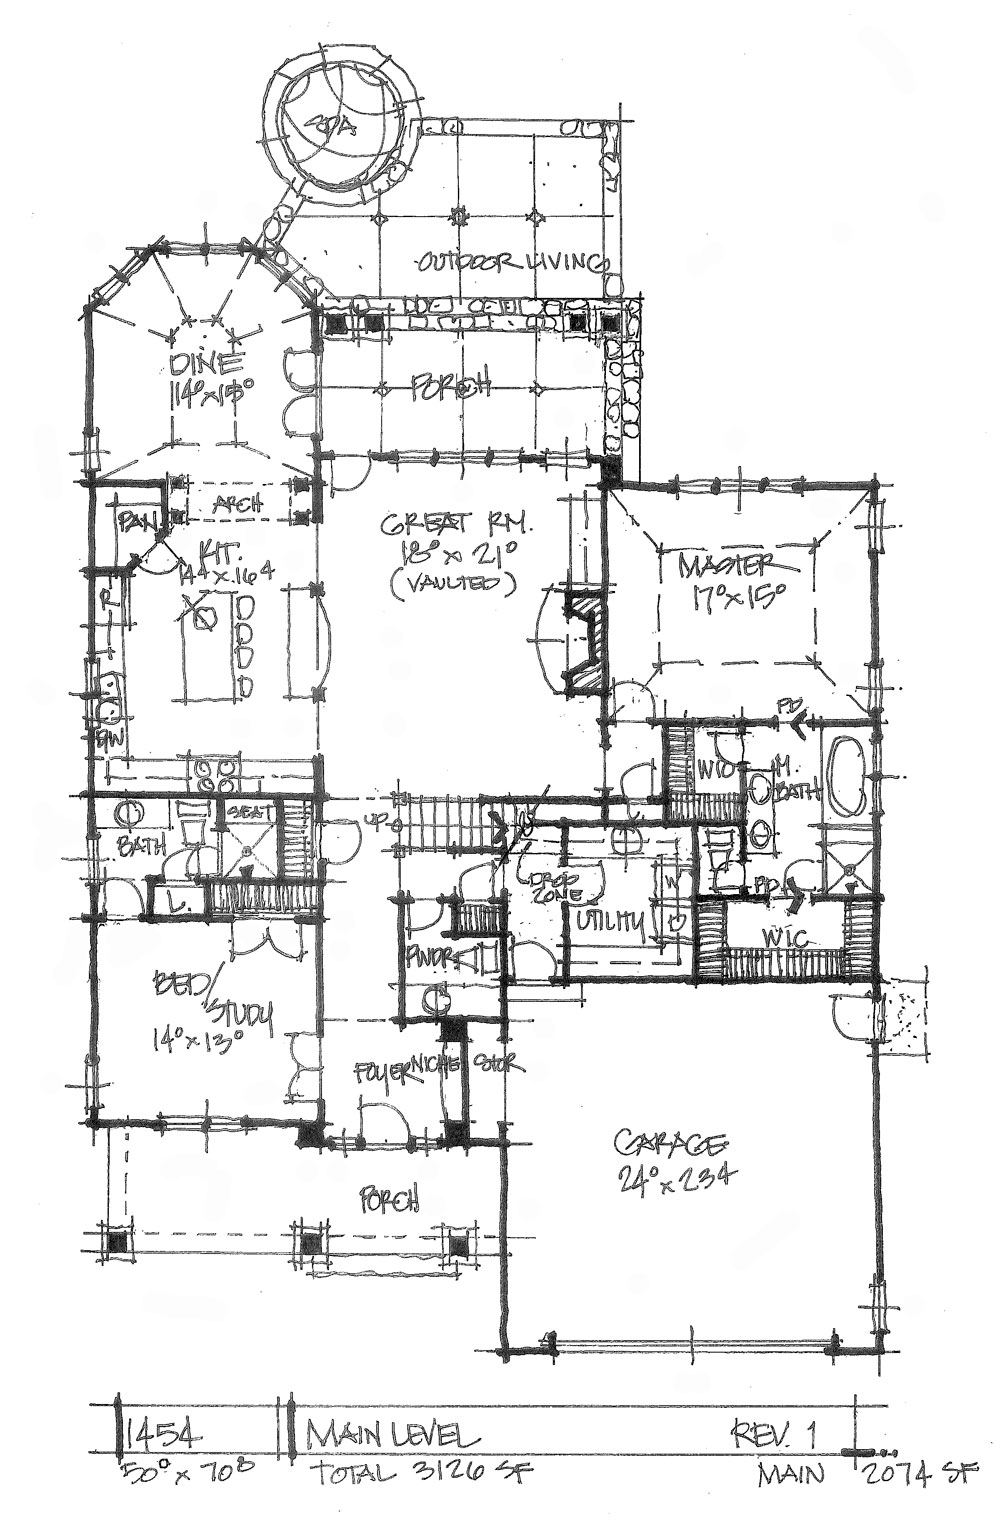 lovely house plans blog #4: Check out the first floor plan of house plan 1454.